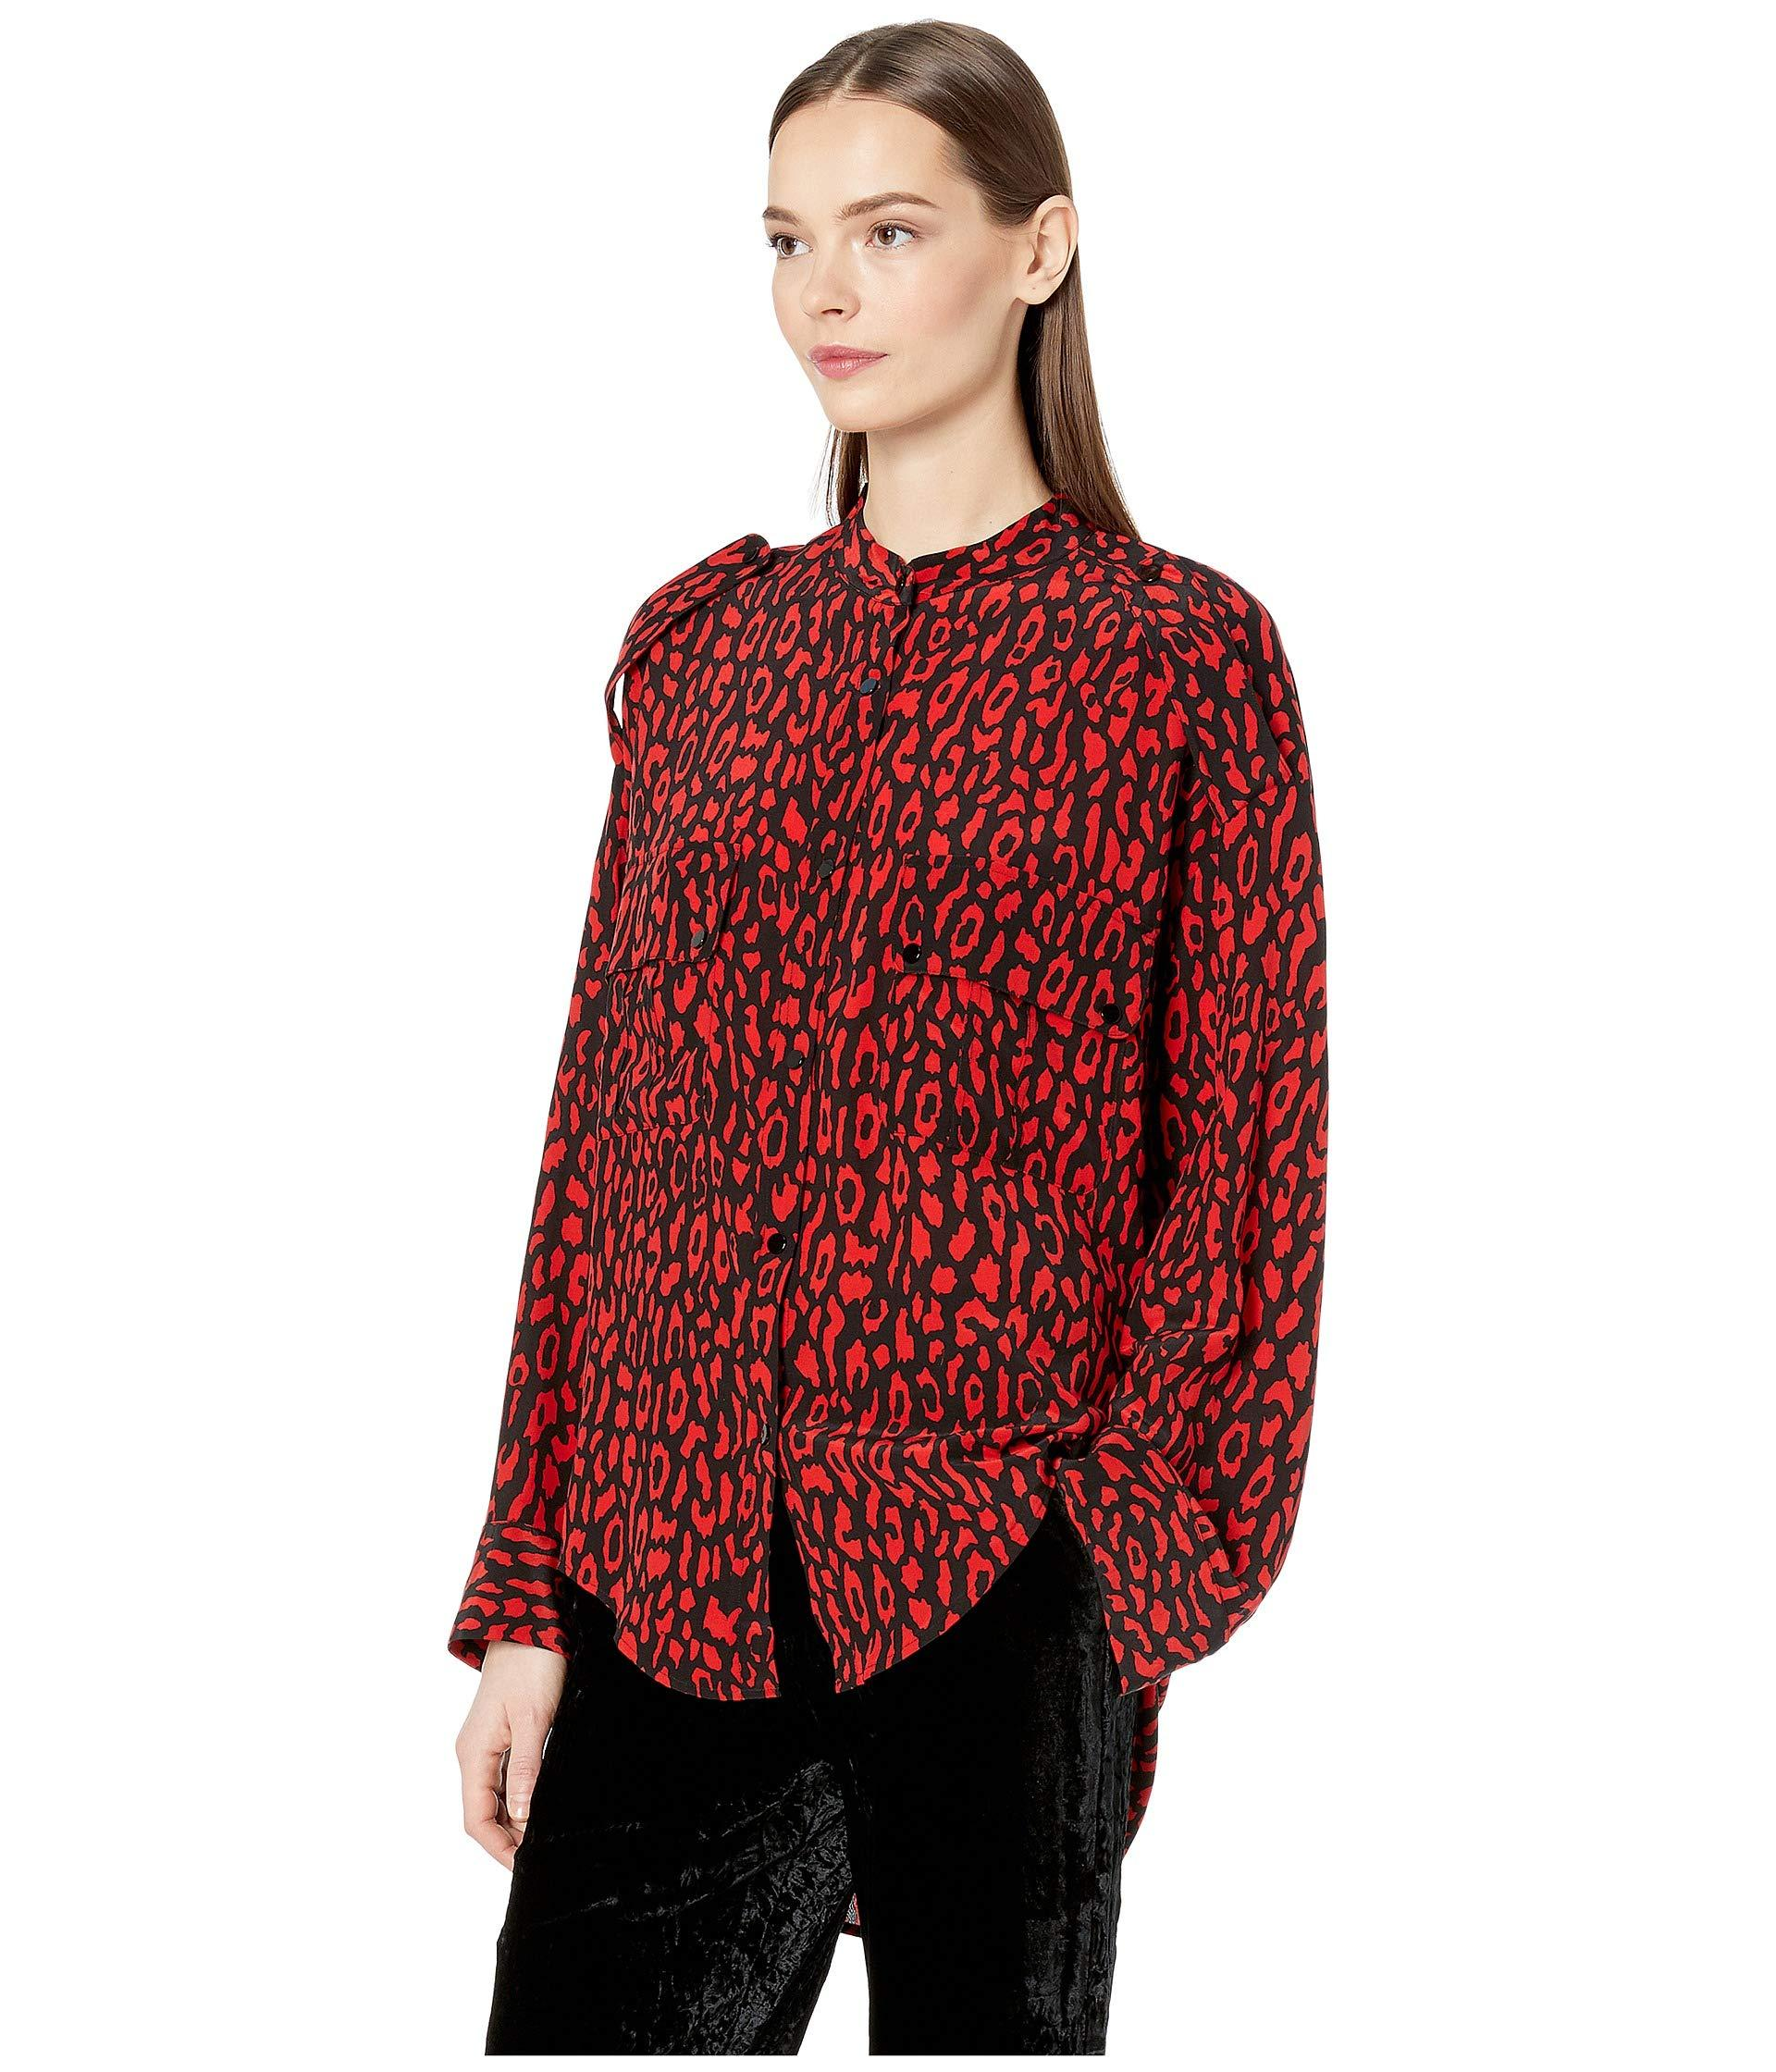 2eeda1e9218e52 Lyst - The Kooples Leopard Print Top (black red) Women s Blouse in Red